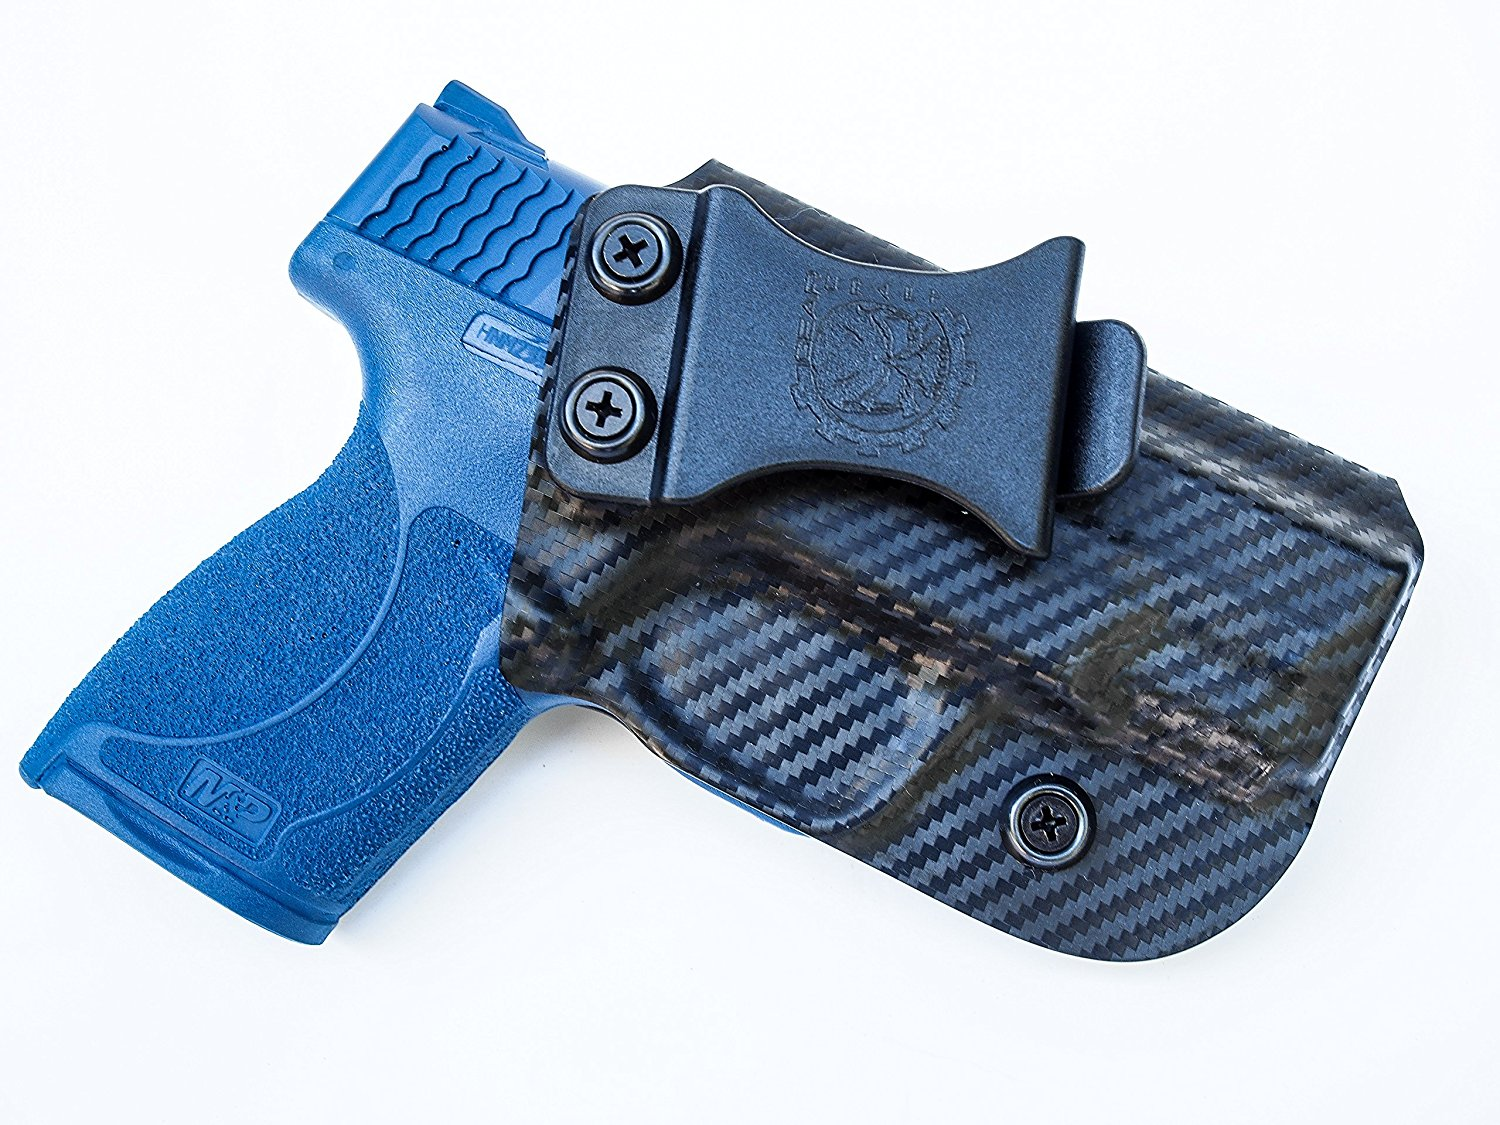 Cheap Best Iwb Kydex Holster, find Best Iwb Kydex Holster